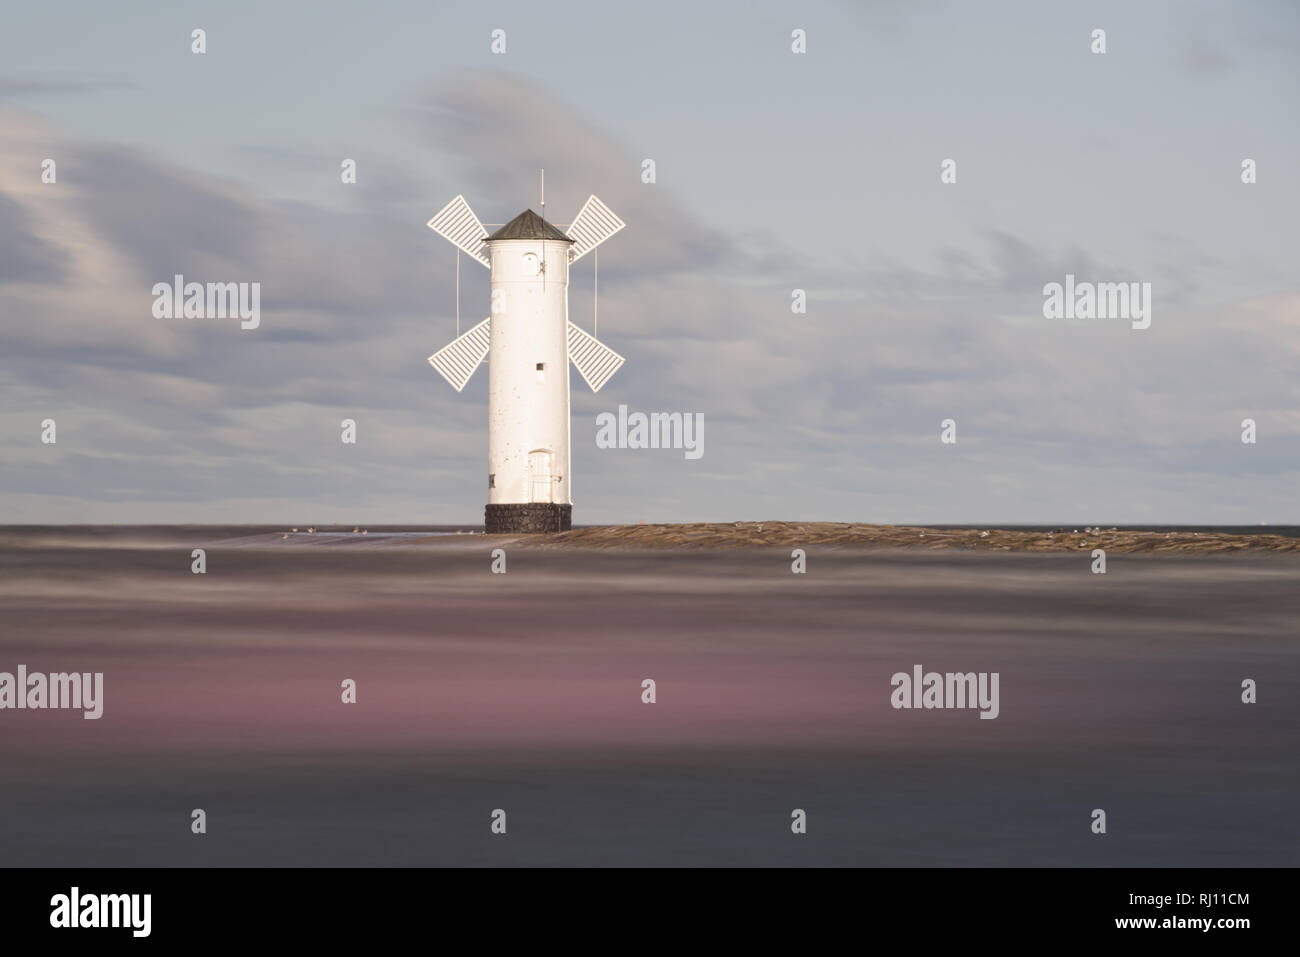 Lighthouse in Swinoujscie, a port in Poland on the Baltic Sea Stock Photo